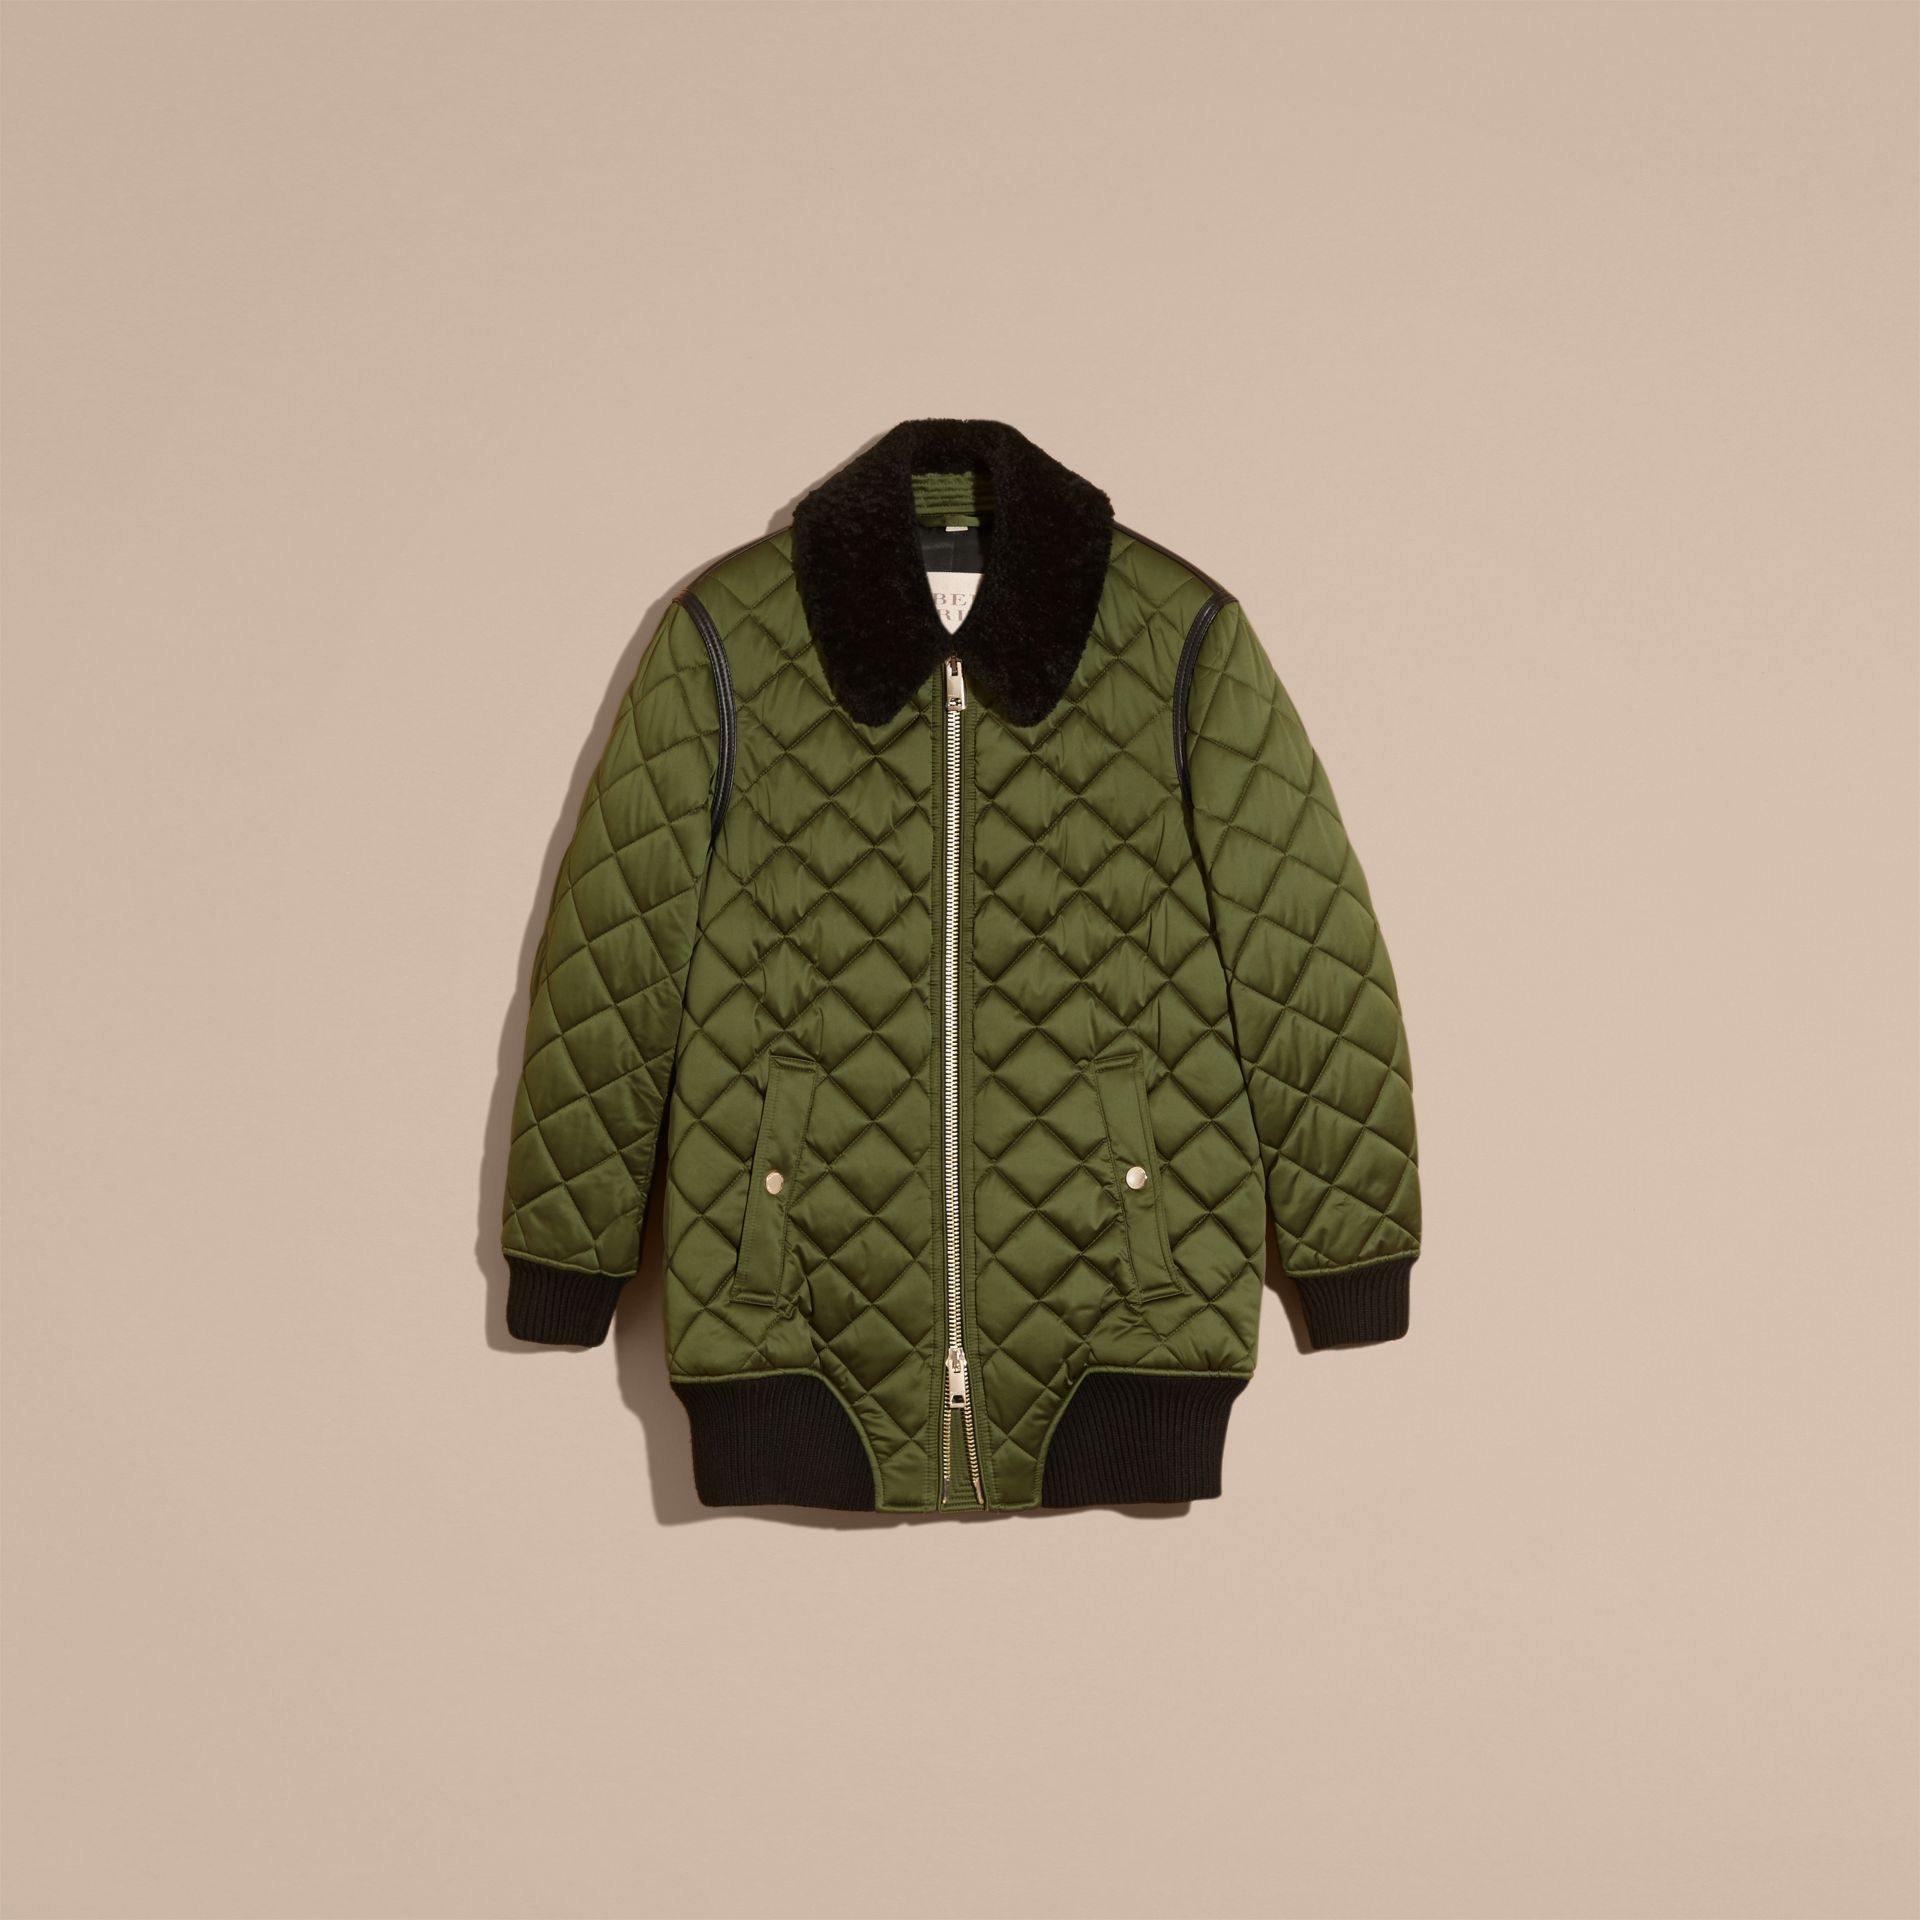 Bright moss green Long Quilted Bomber Jacket with Shearling Collar - gallery image 4